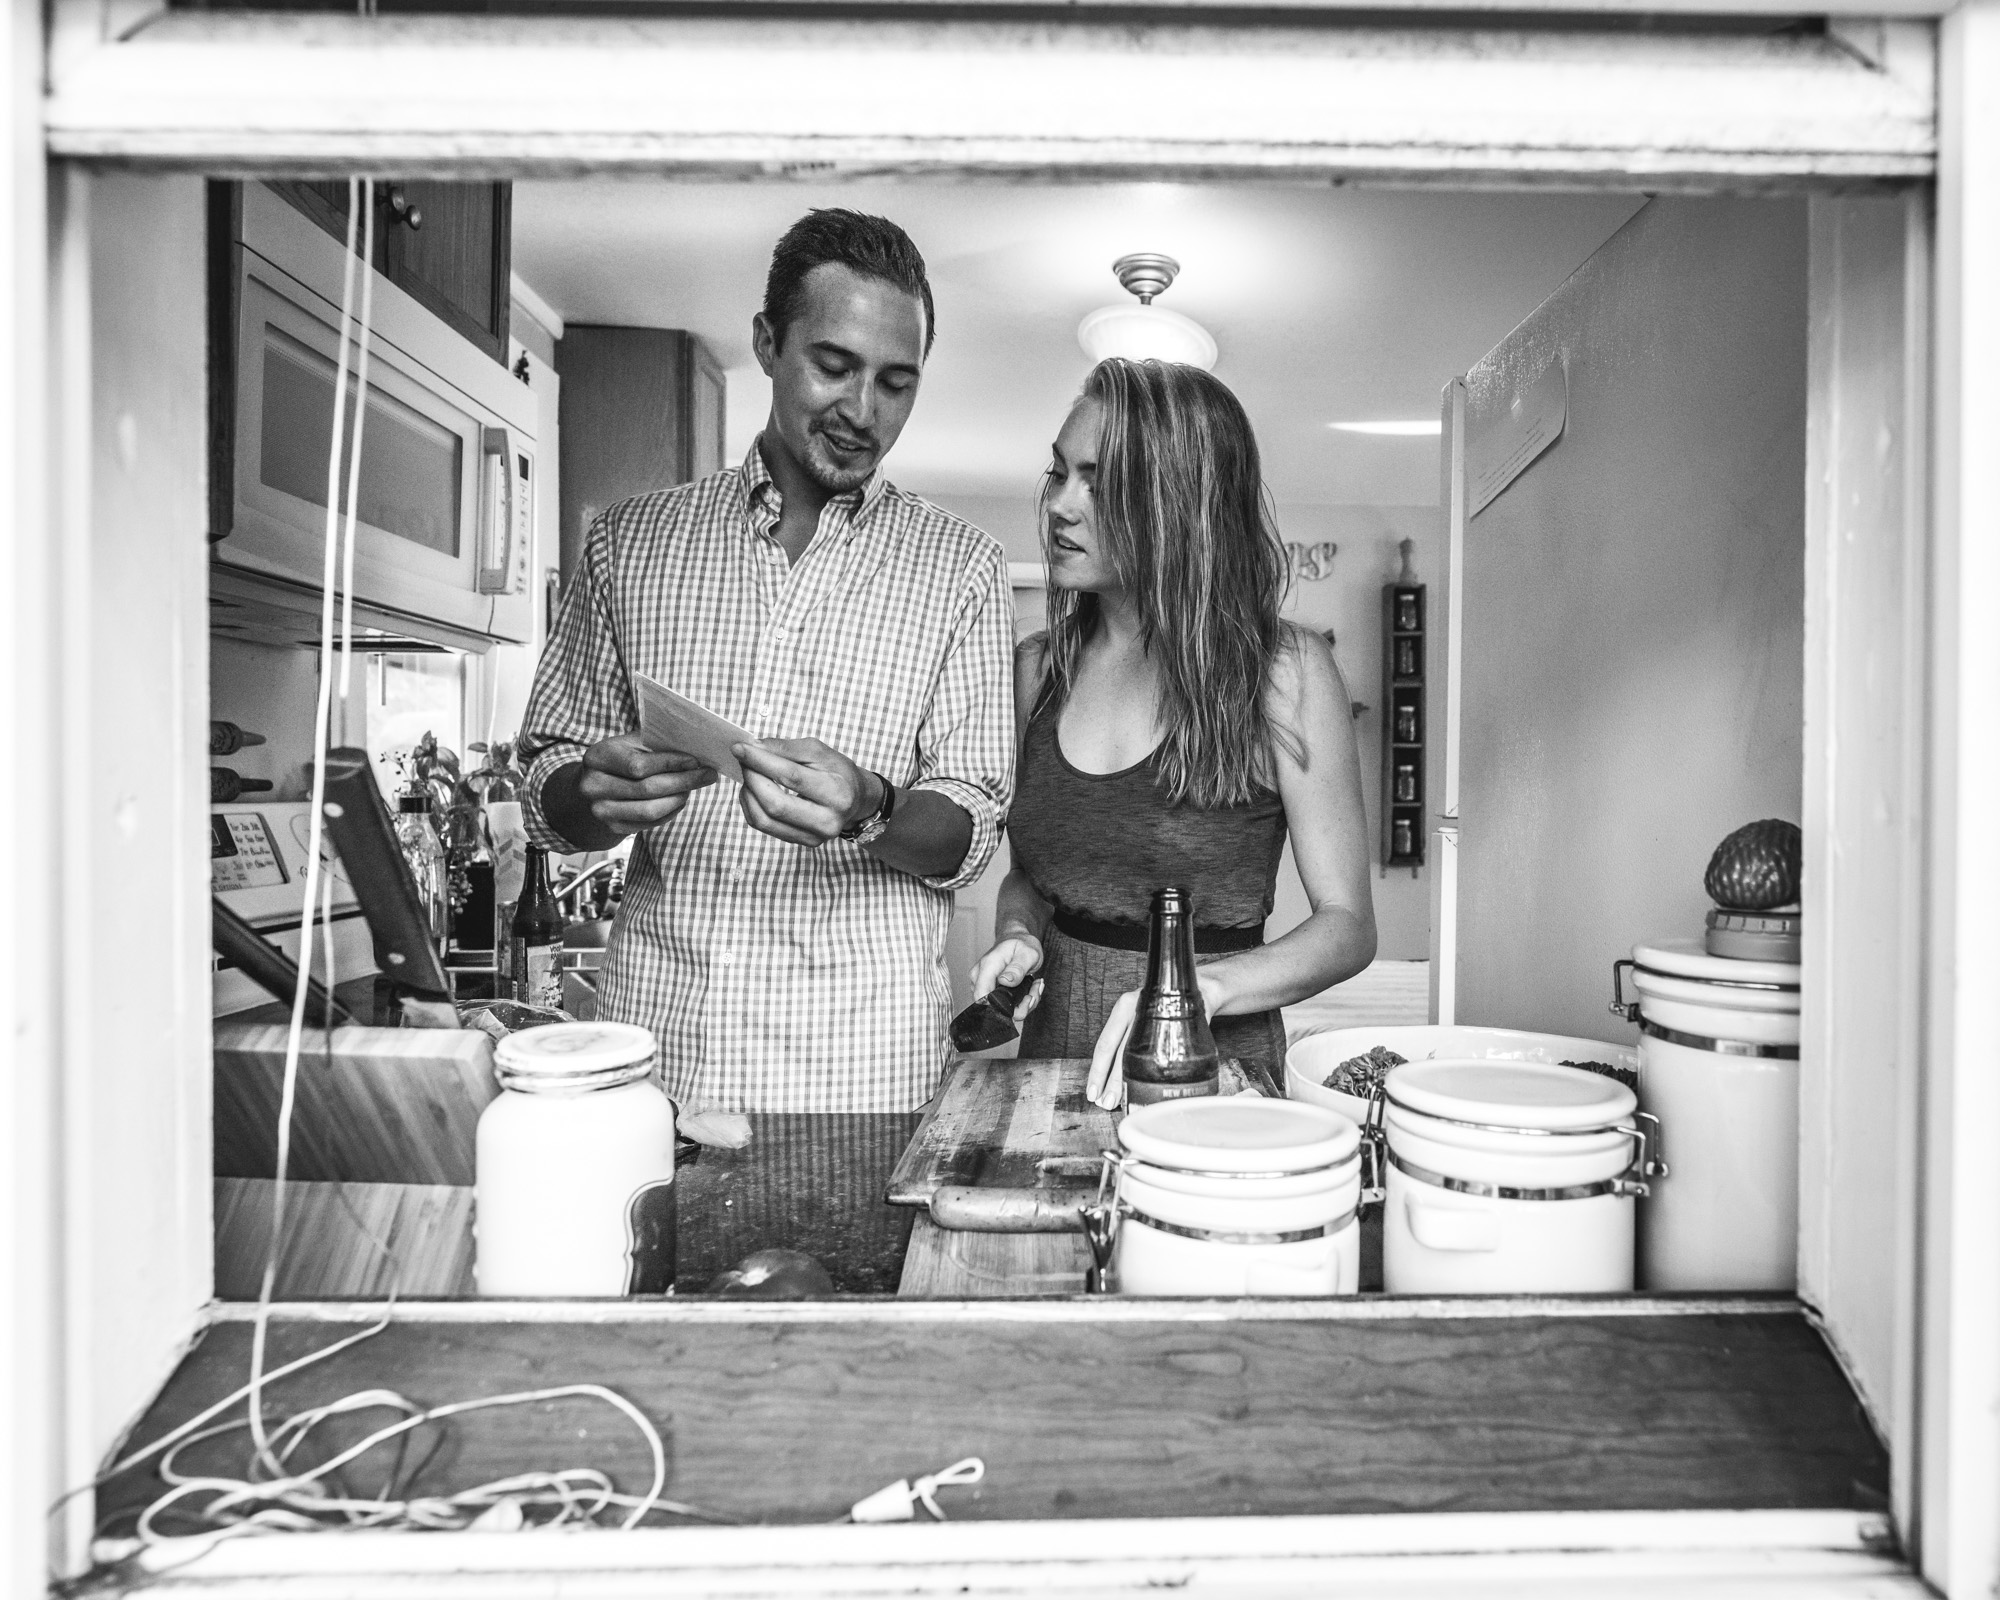 Black and white engagement photo looking in a window at a man and woman looking at a recipe together